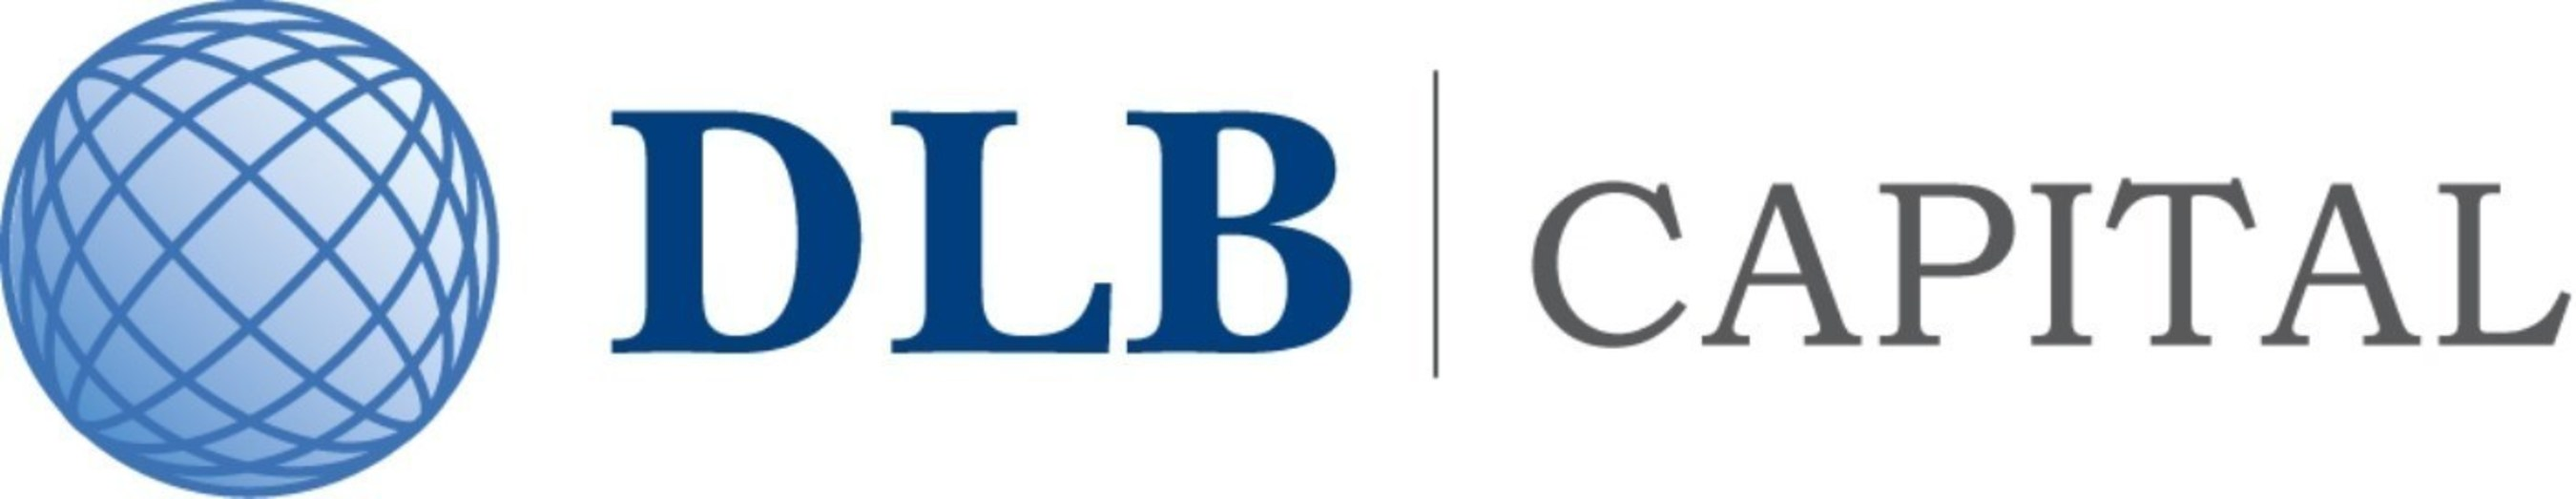 DLB Capital's China Rapid Finance Investment Pre-Approves 50 Million Chinese Consumers for First-Time Loans and Becomes a Leader in Online Loan Origination